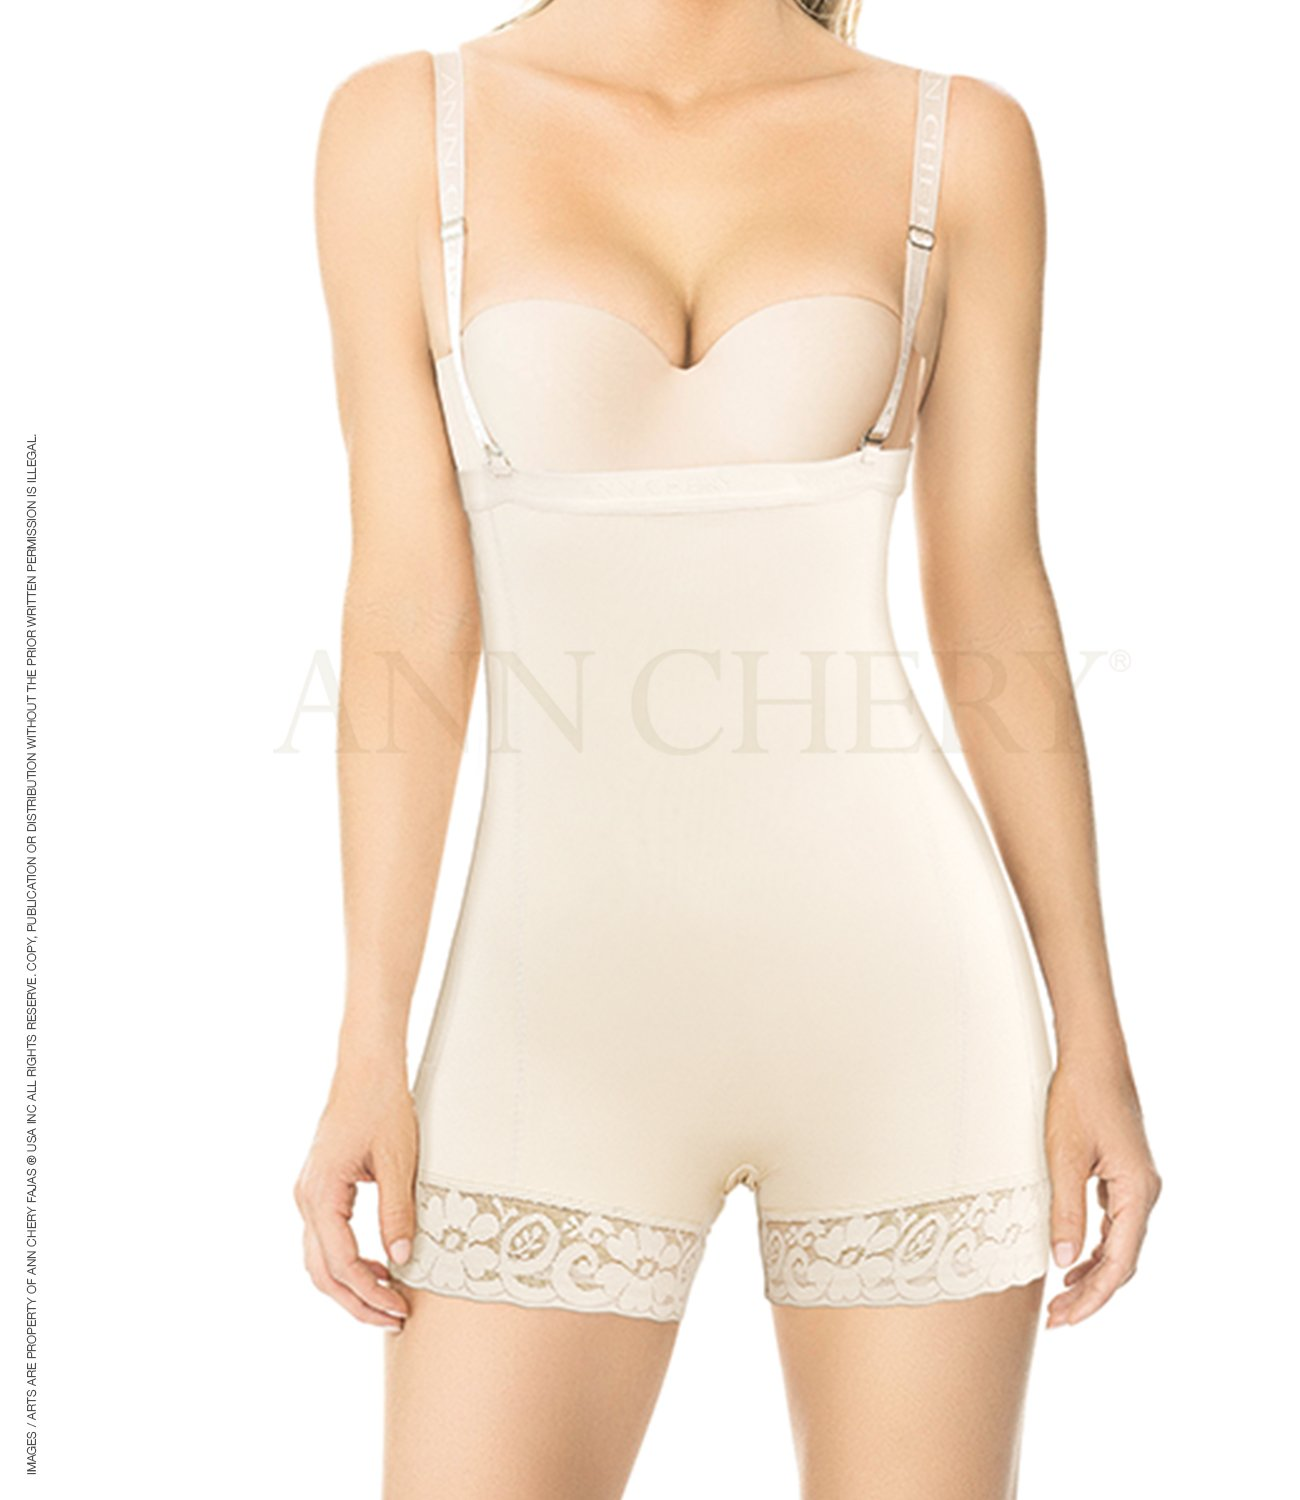 Ann Chery 4016 Lila Latex